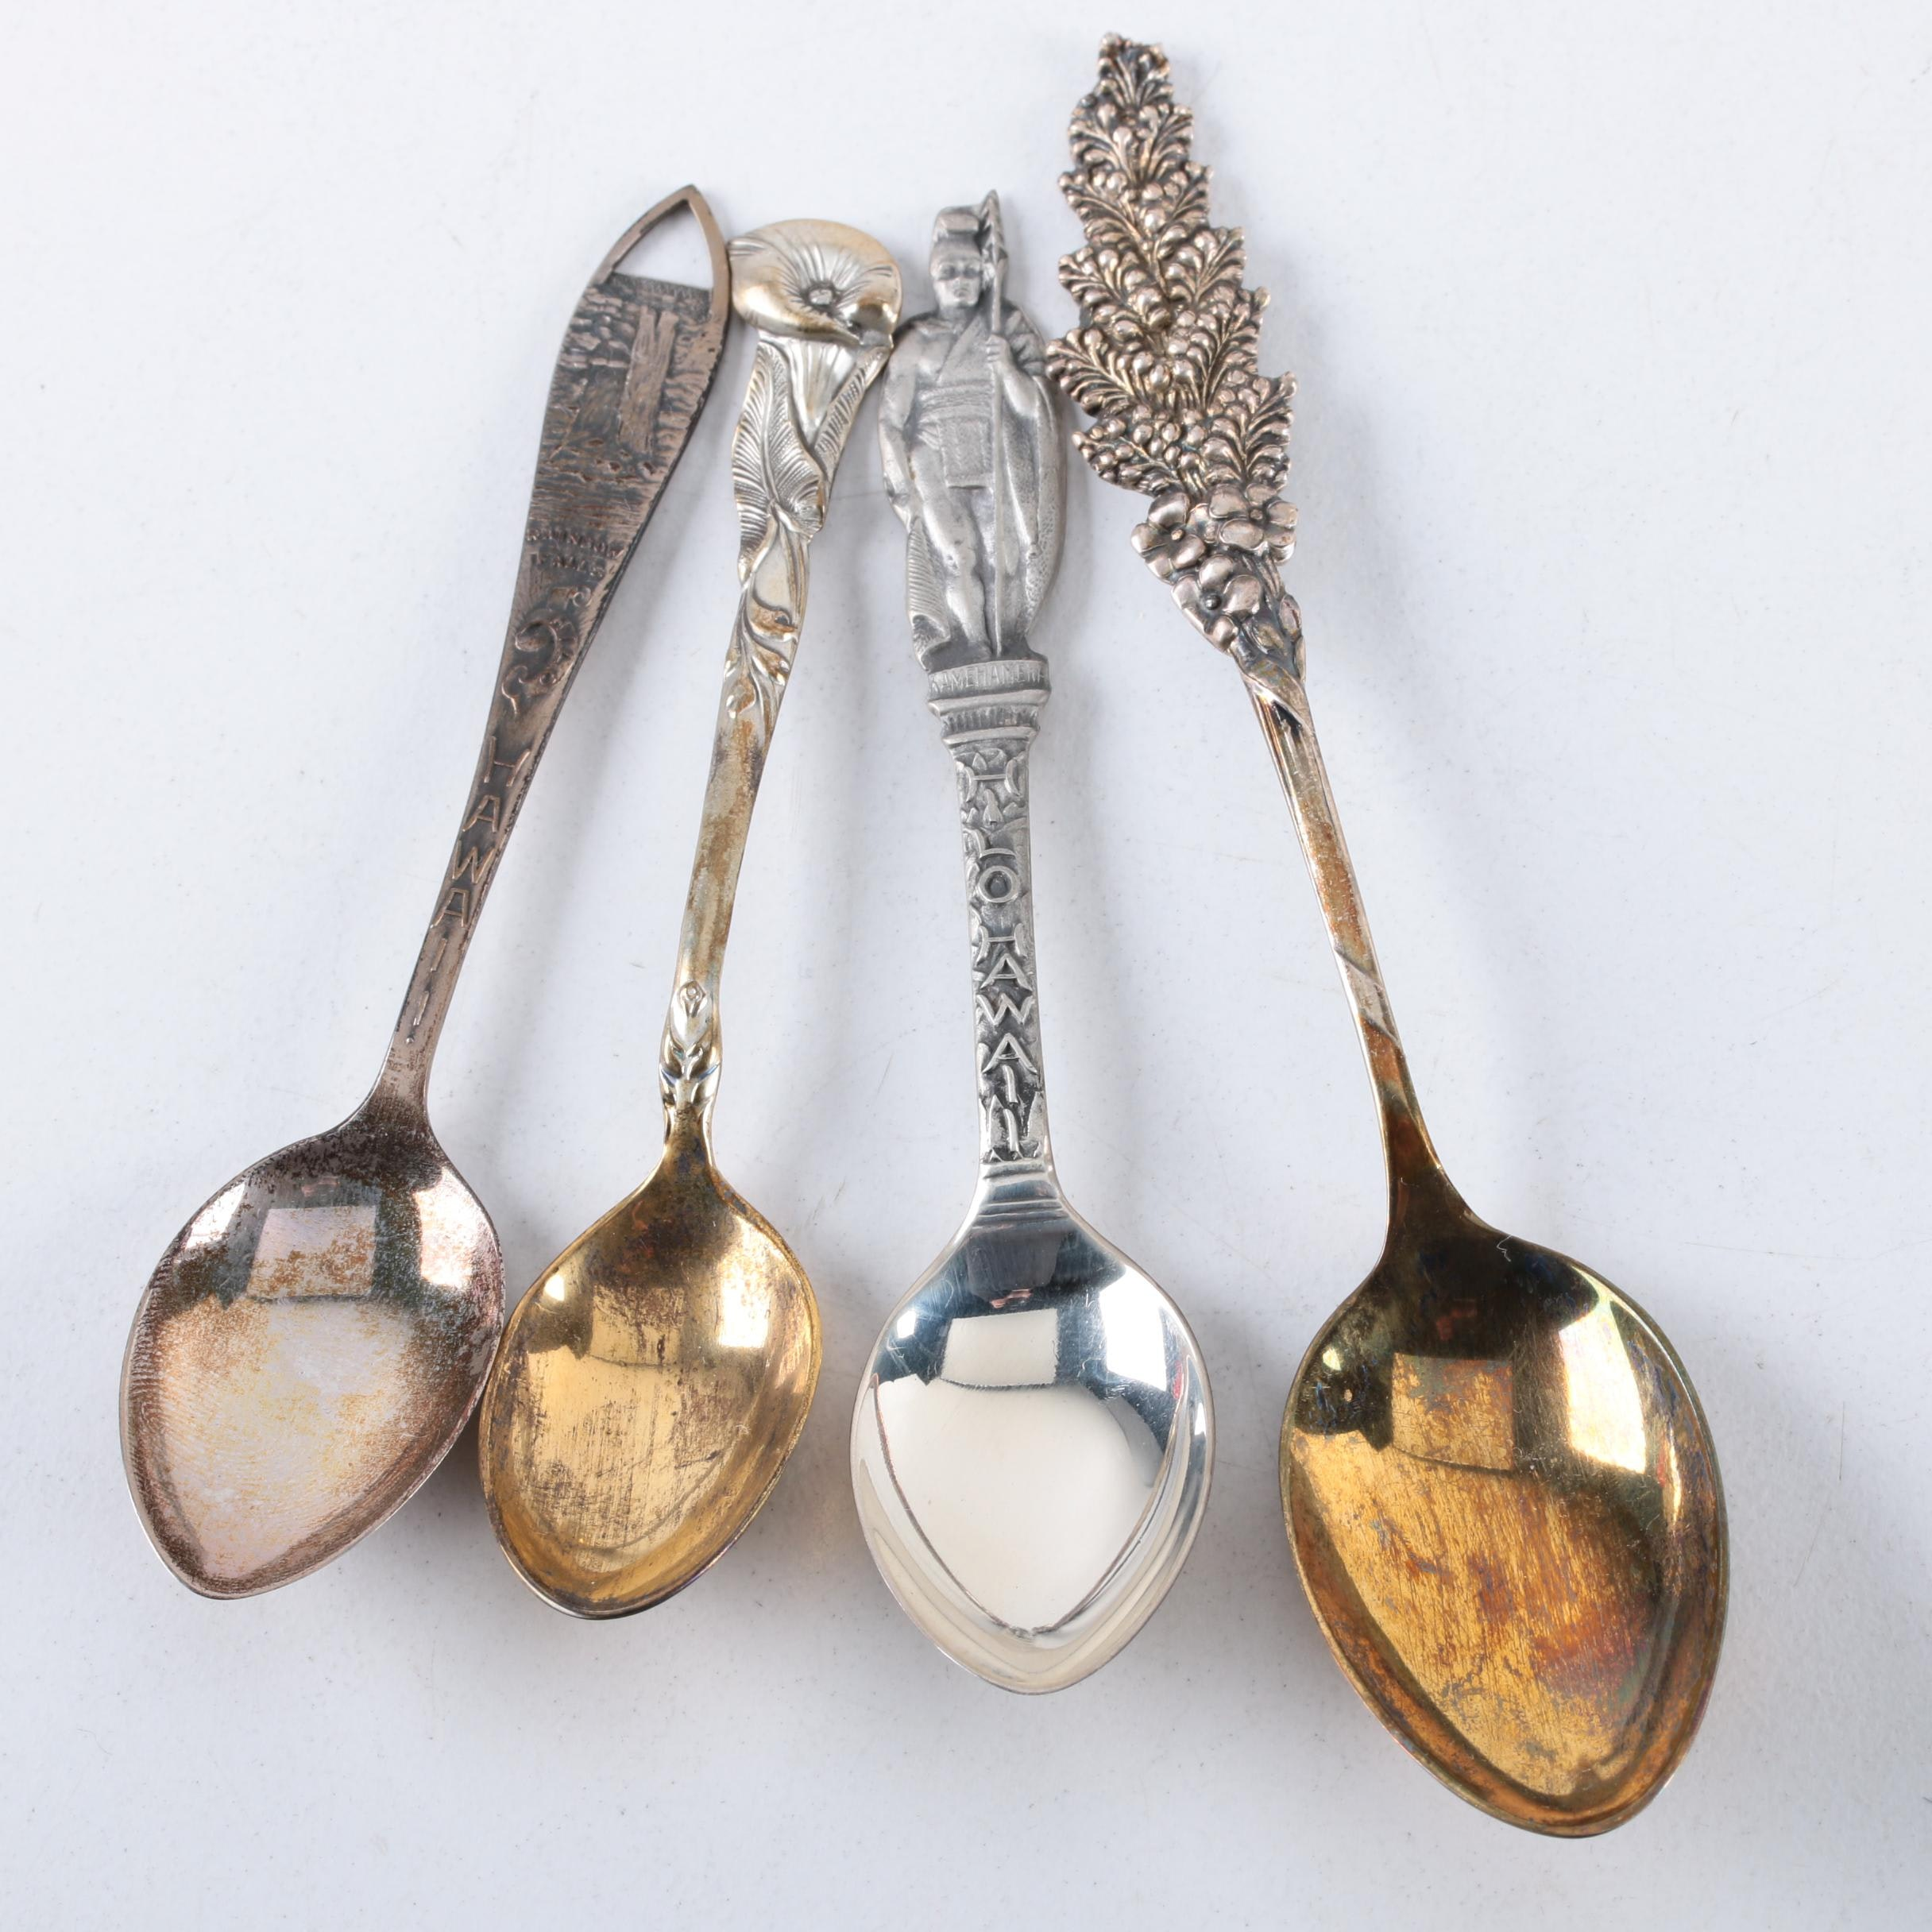 Reed & Barton Sterling Spoons and Charles M. Robbins Sterling Souvenir Spoons